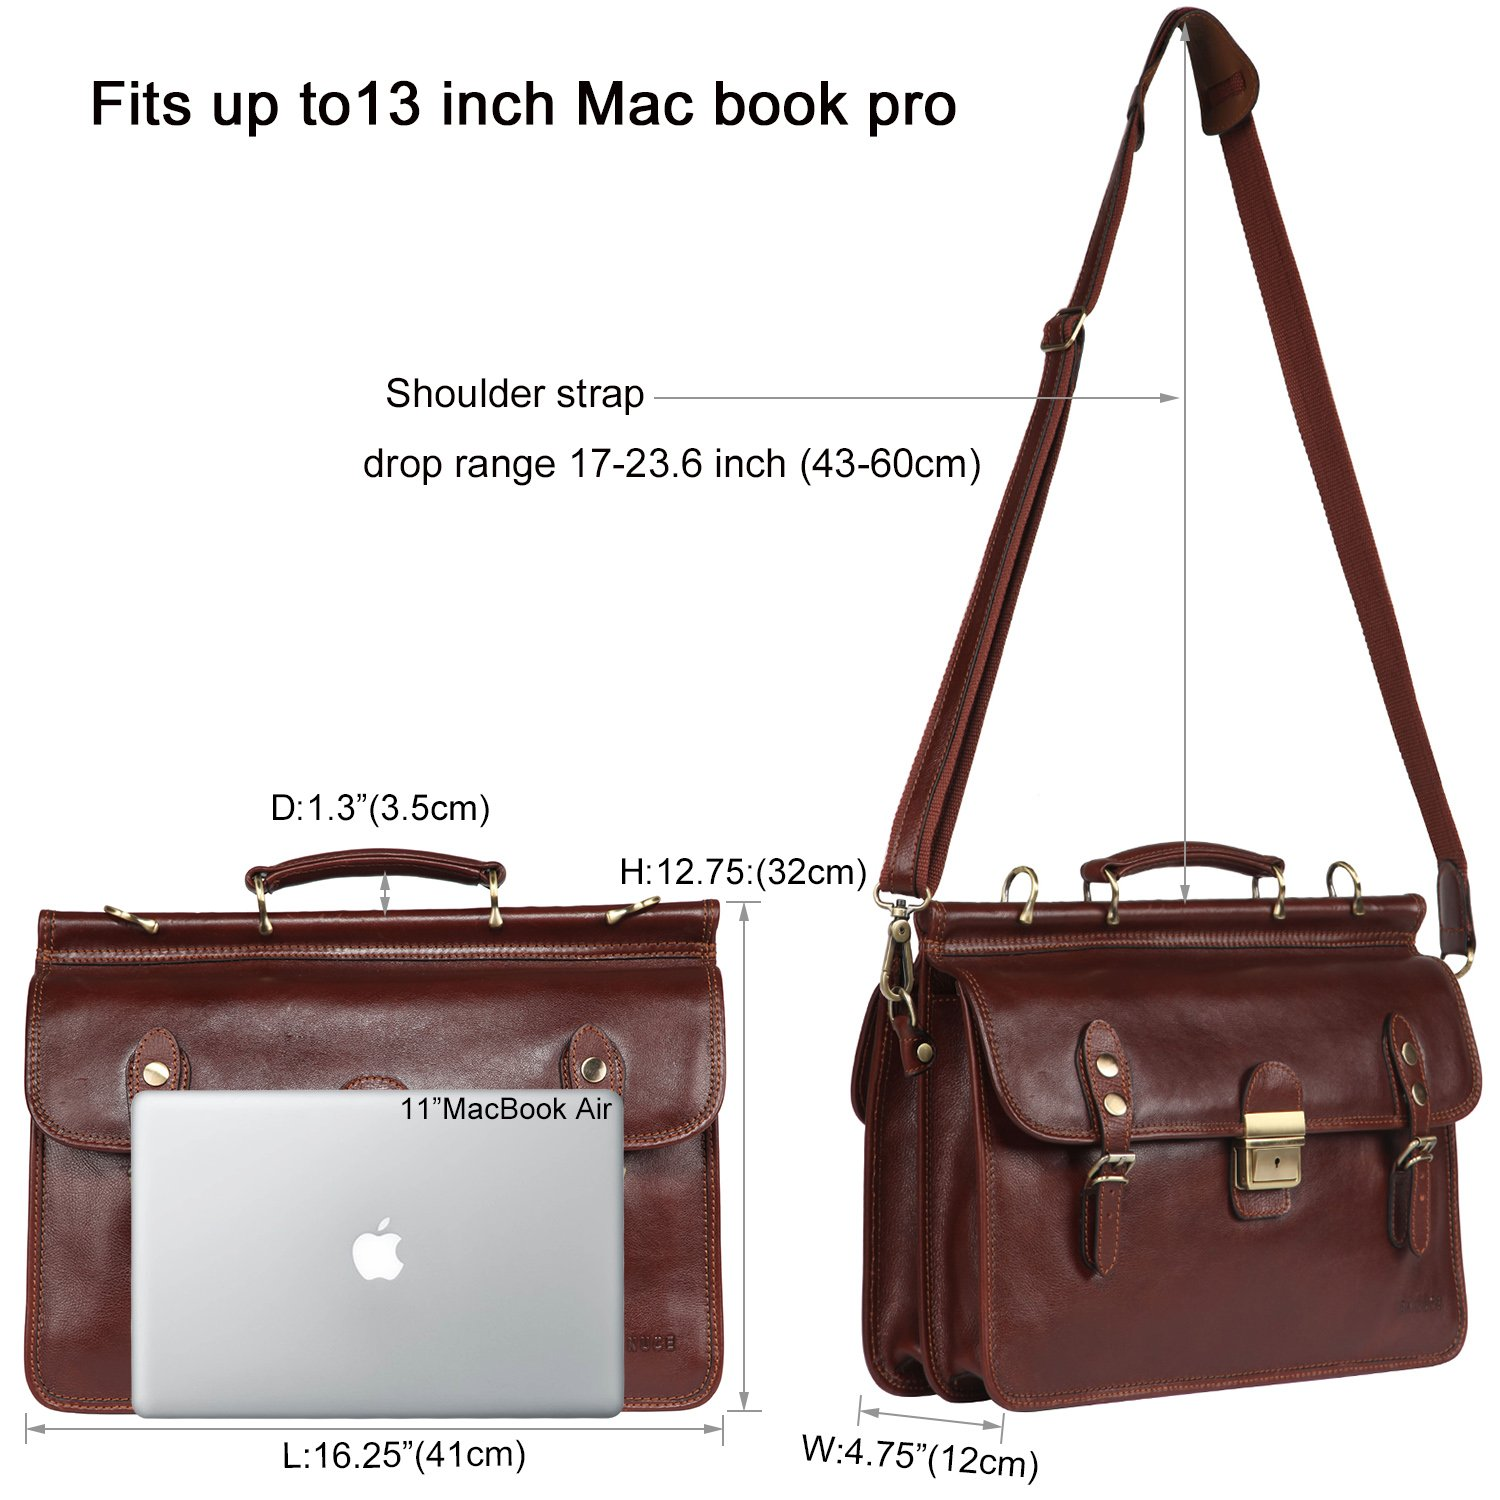 Banuce Mens Italian Leather Flapover Briefcase Tote 2way Business Laptop Messenger Bag Attache Case by Banuce (Image #4)